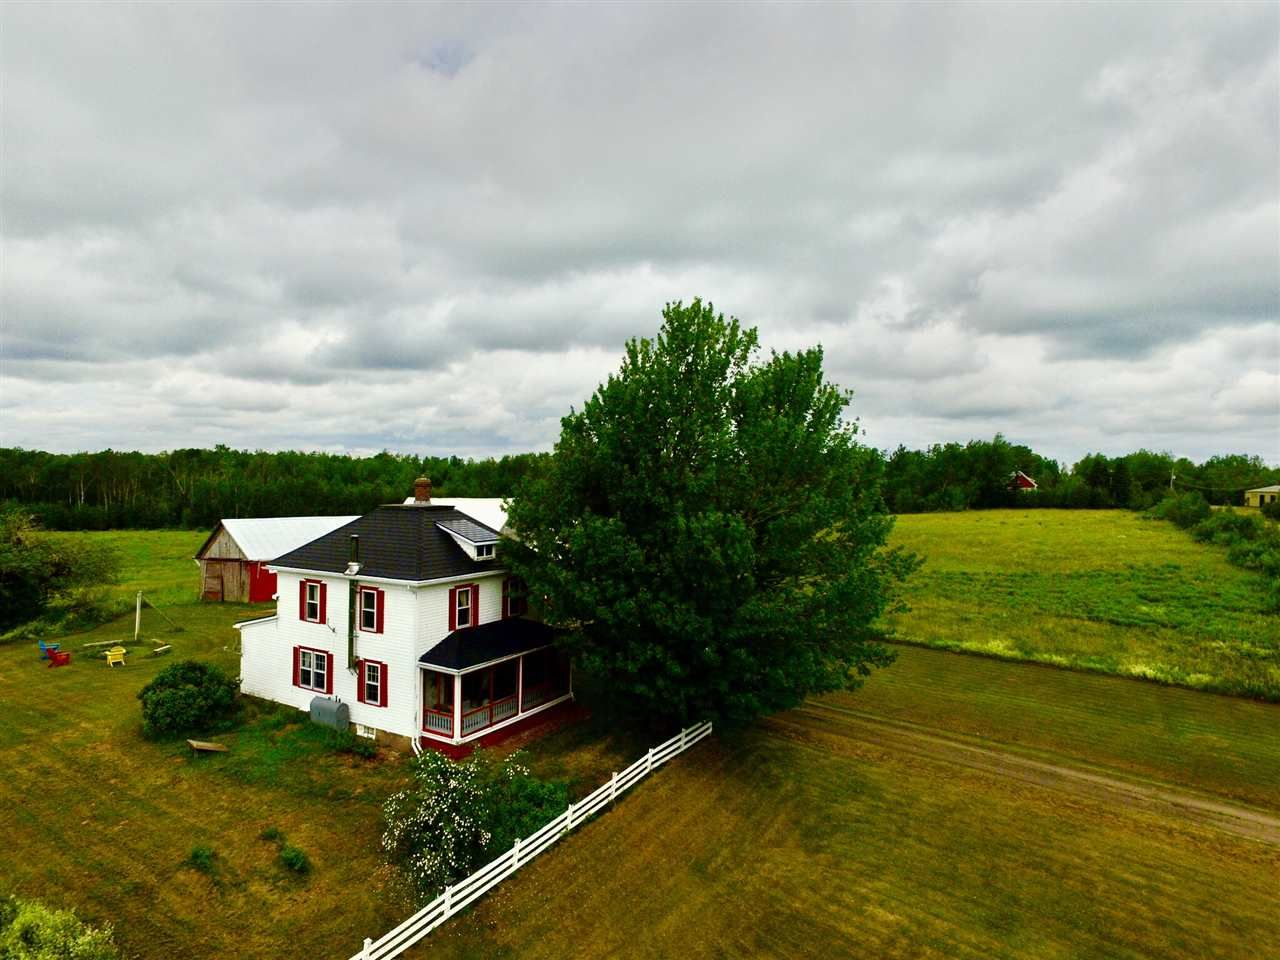 Main Photo: 1023 Meadowville Station Road in Meadowville: 108-Rural Pictou County Residential for sale (Northern Region)  : MLS®# 202011771